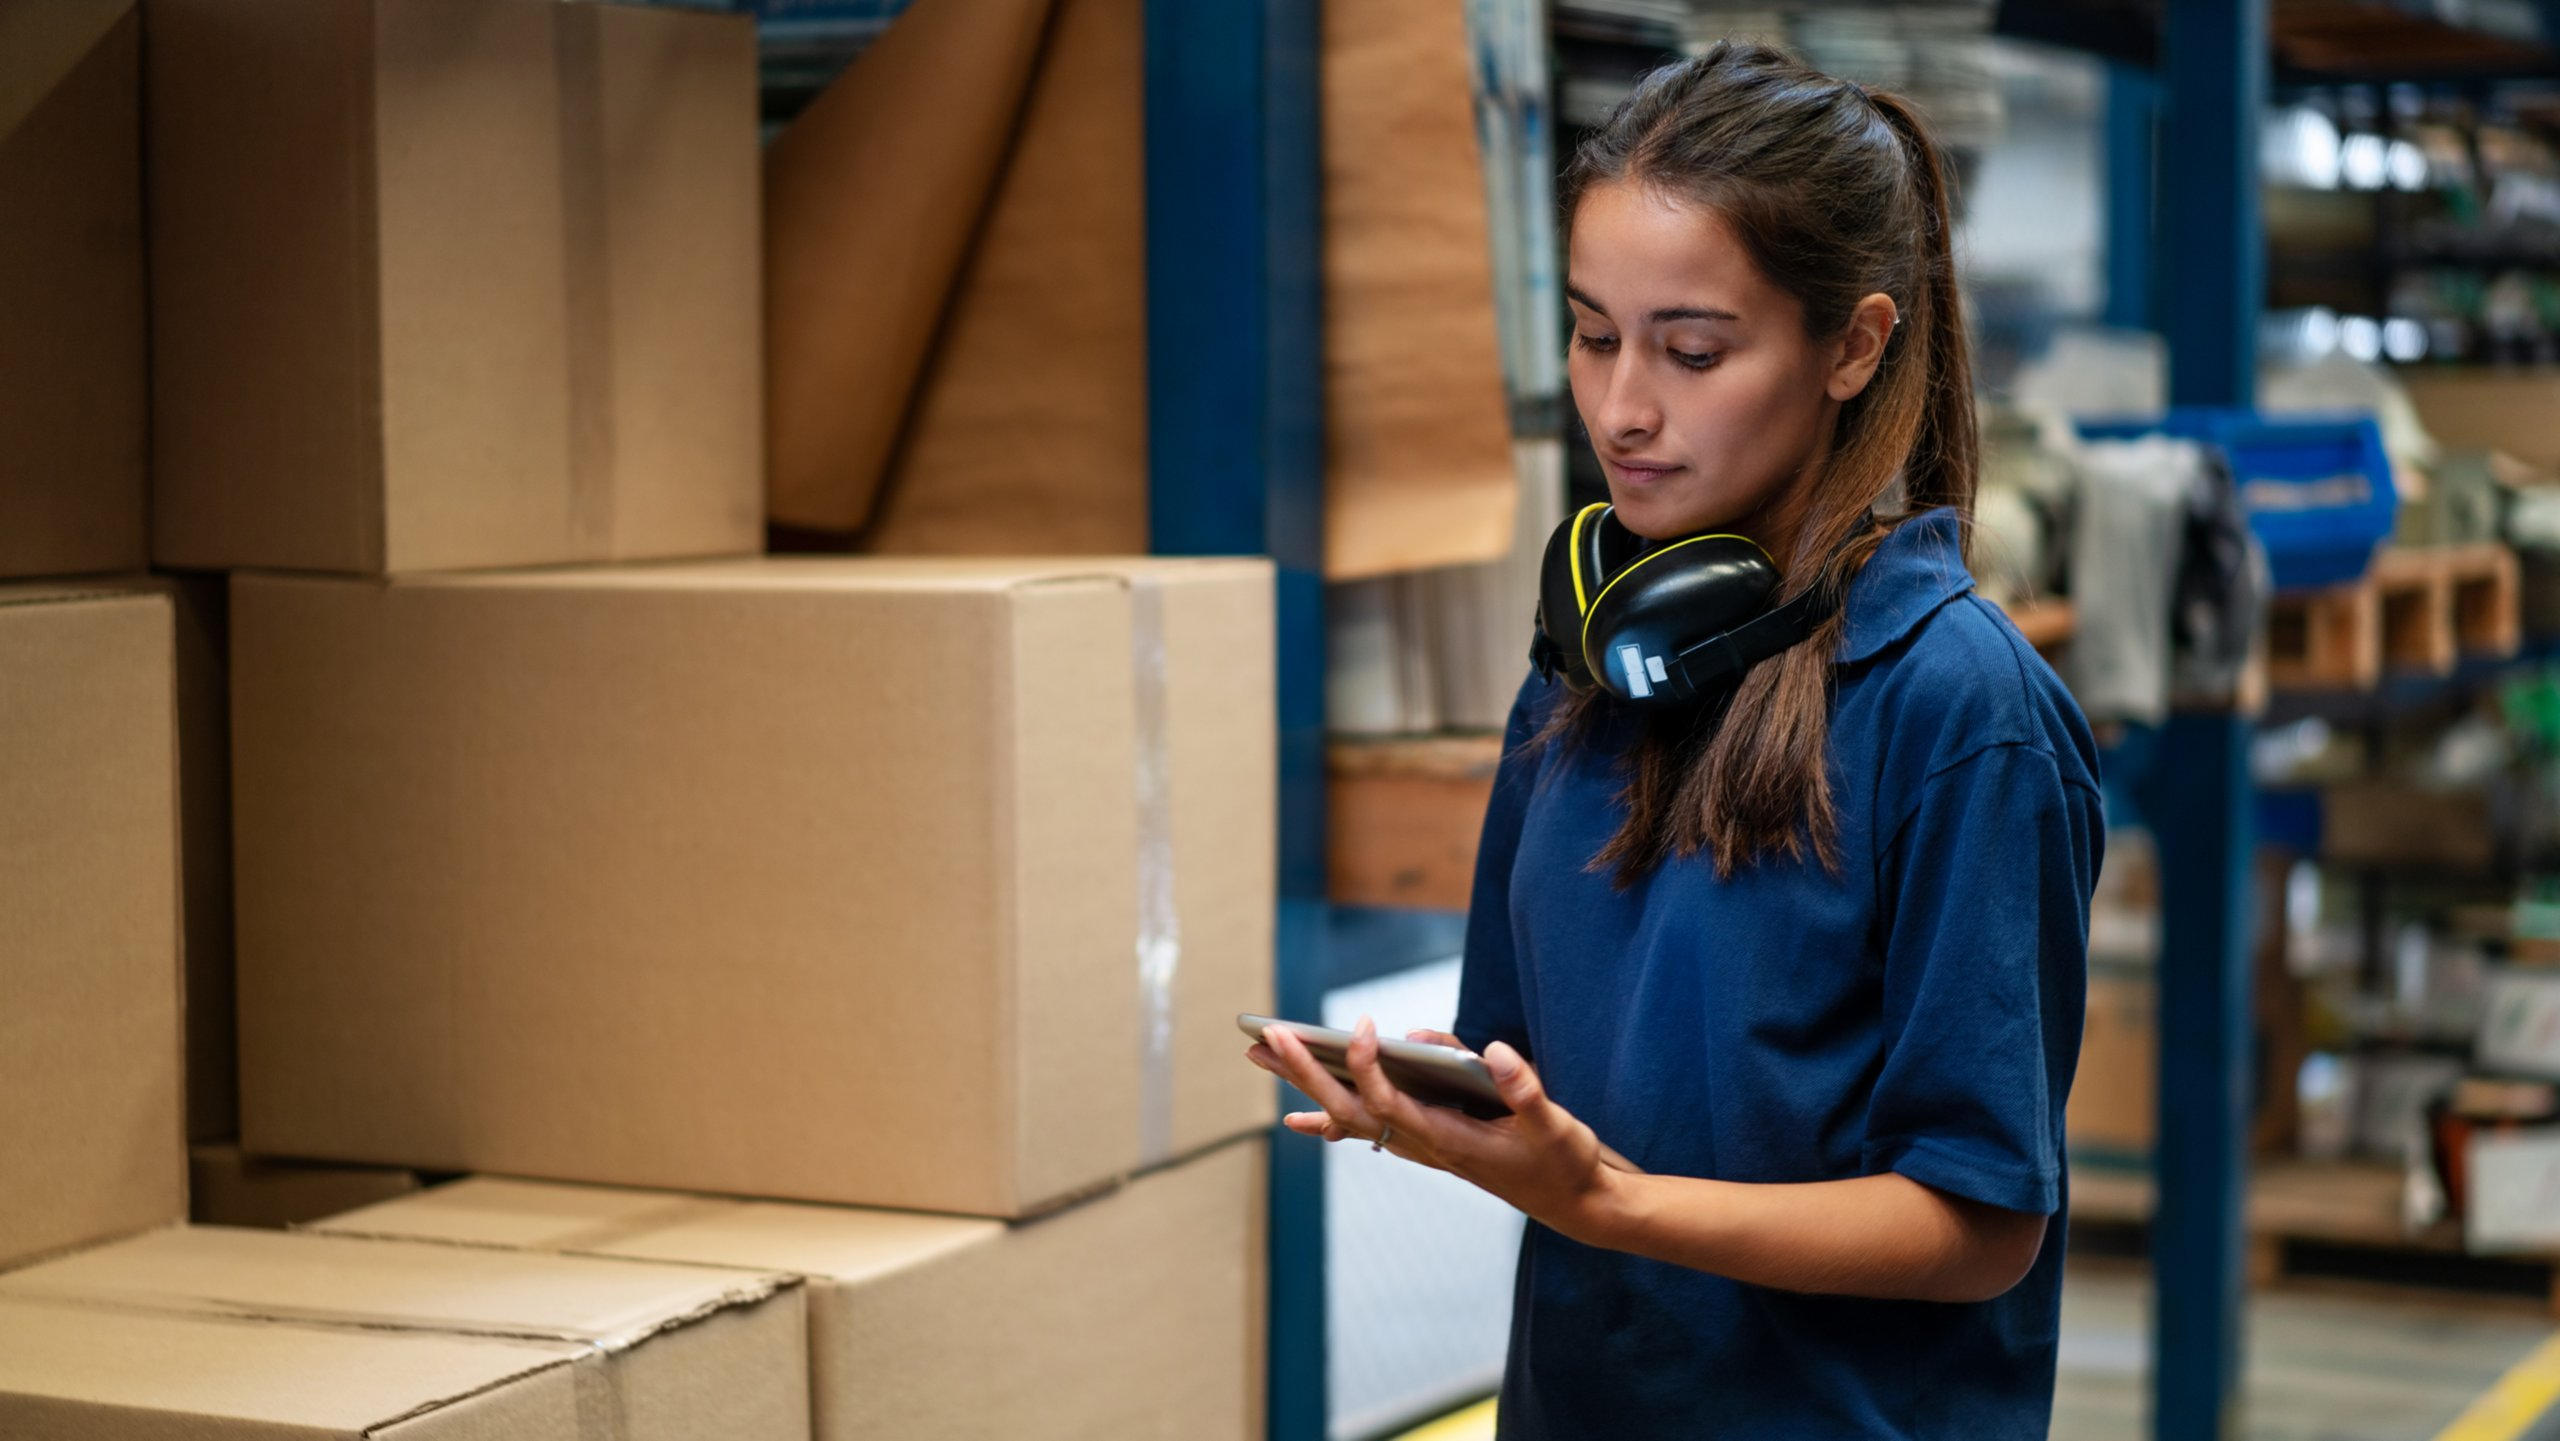 Employee tracking packages on her tablet